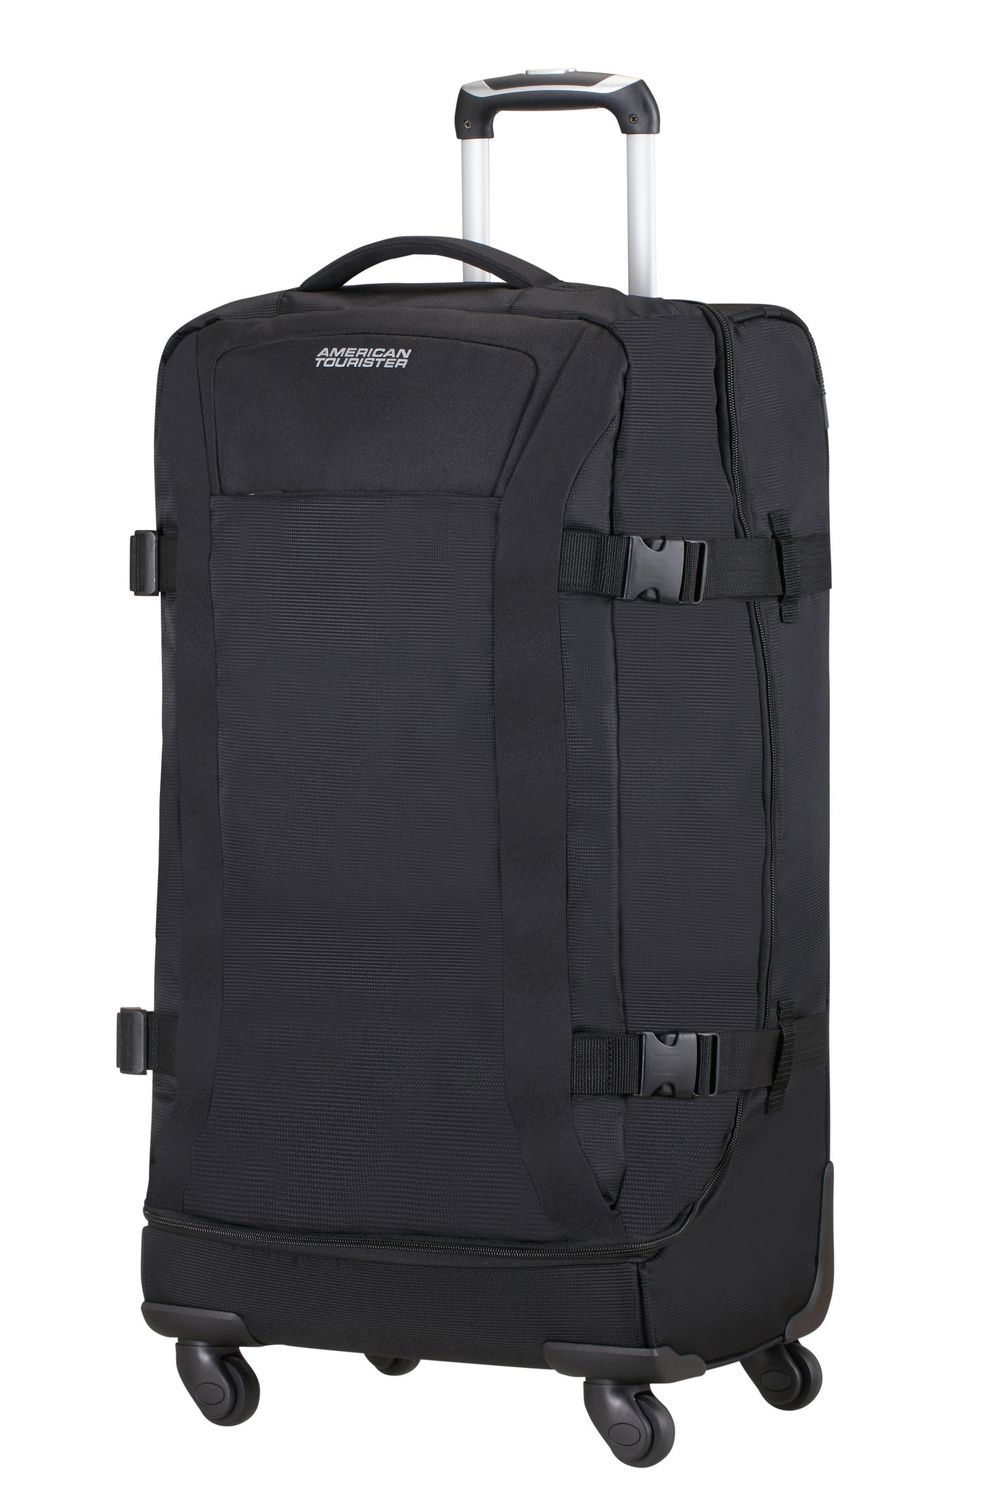 American Tourister Road Quest Duffle Bag - image 1 of 5 zoomed image 2a887a714251a